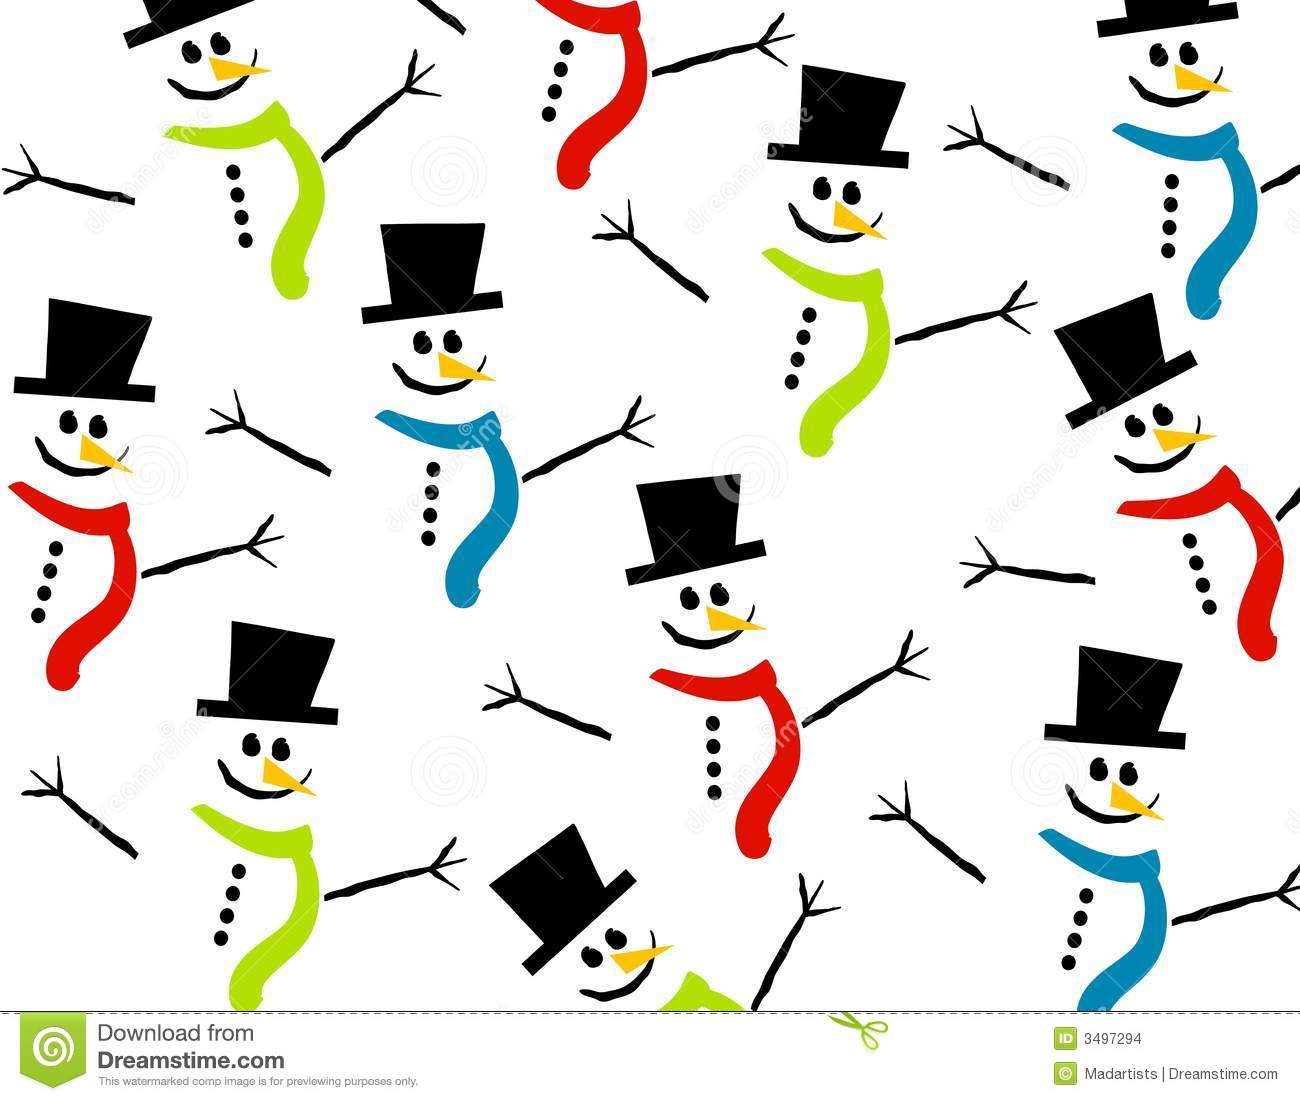 ... arranged snowmen figures wearing hats and scarves in different colors